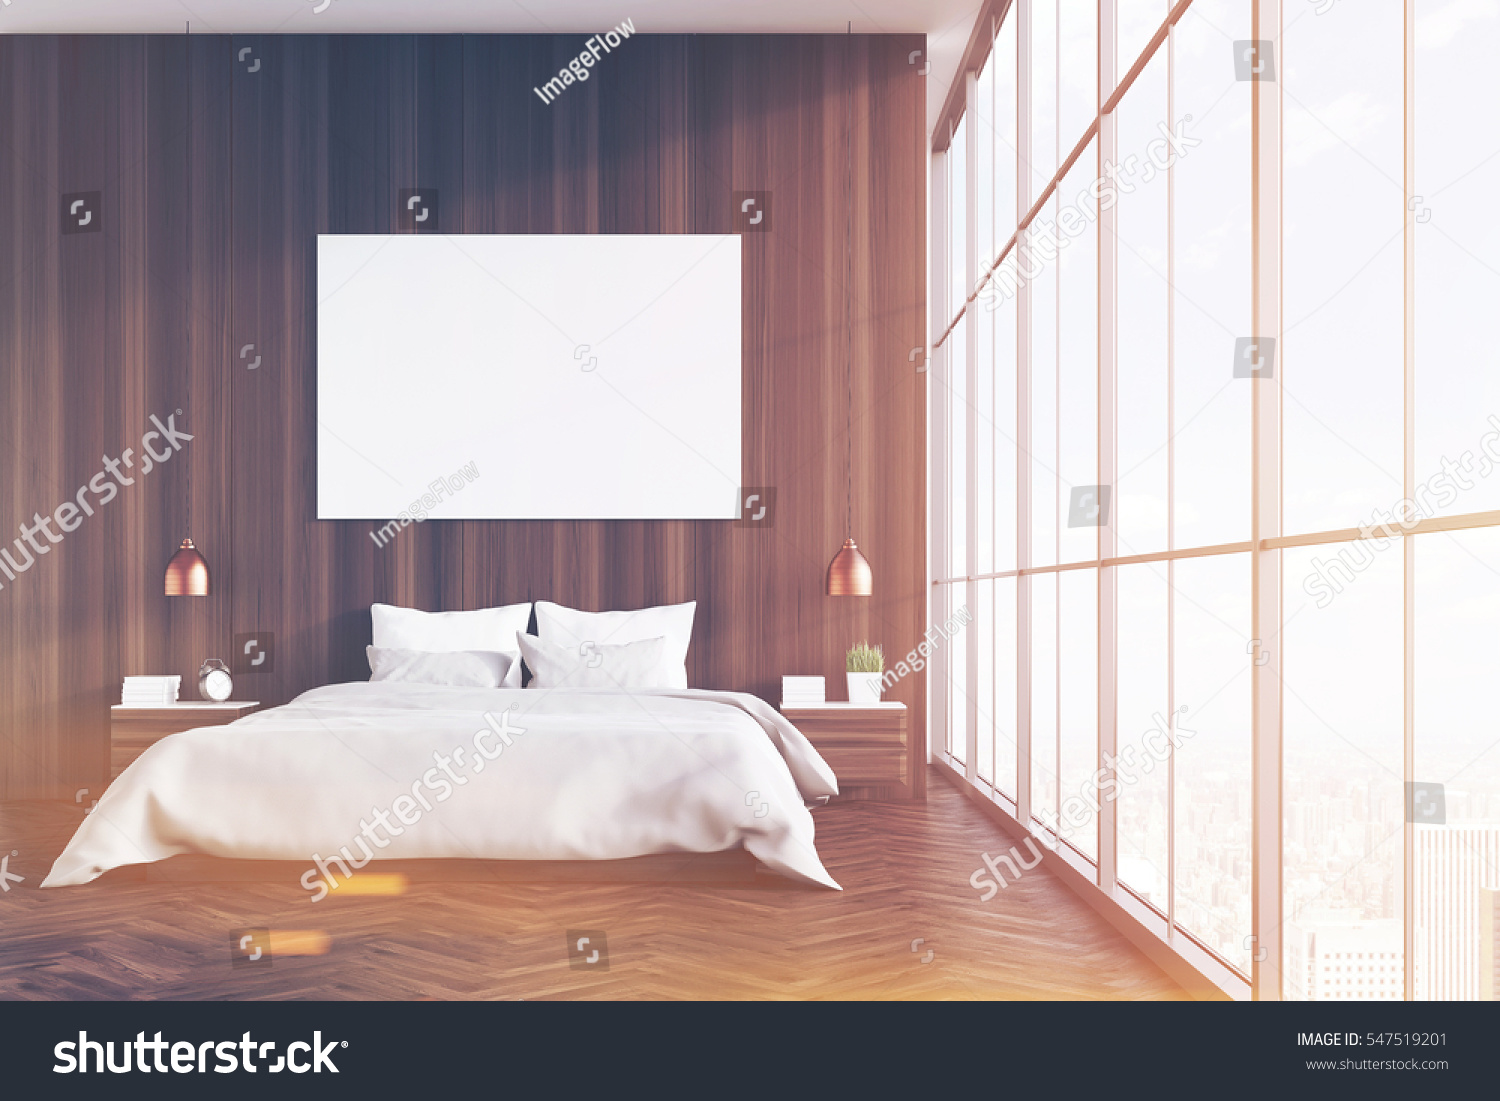 Front View Bedroom Interior King Size Stock Illustration 547519201